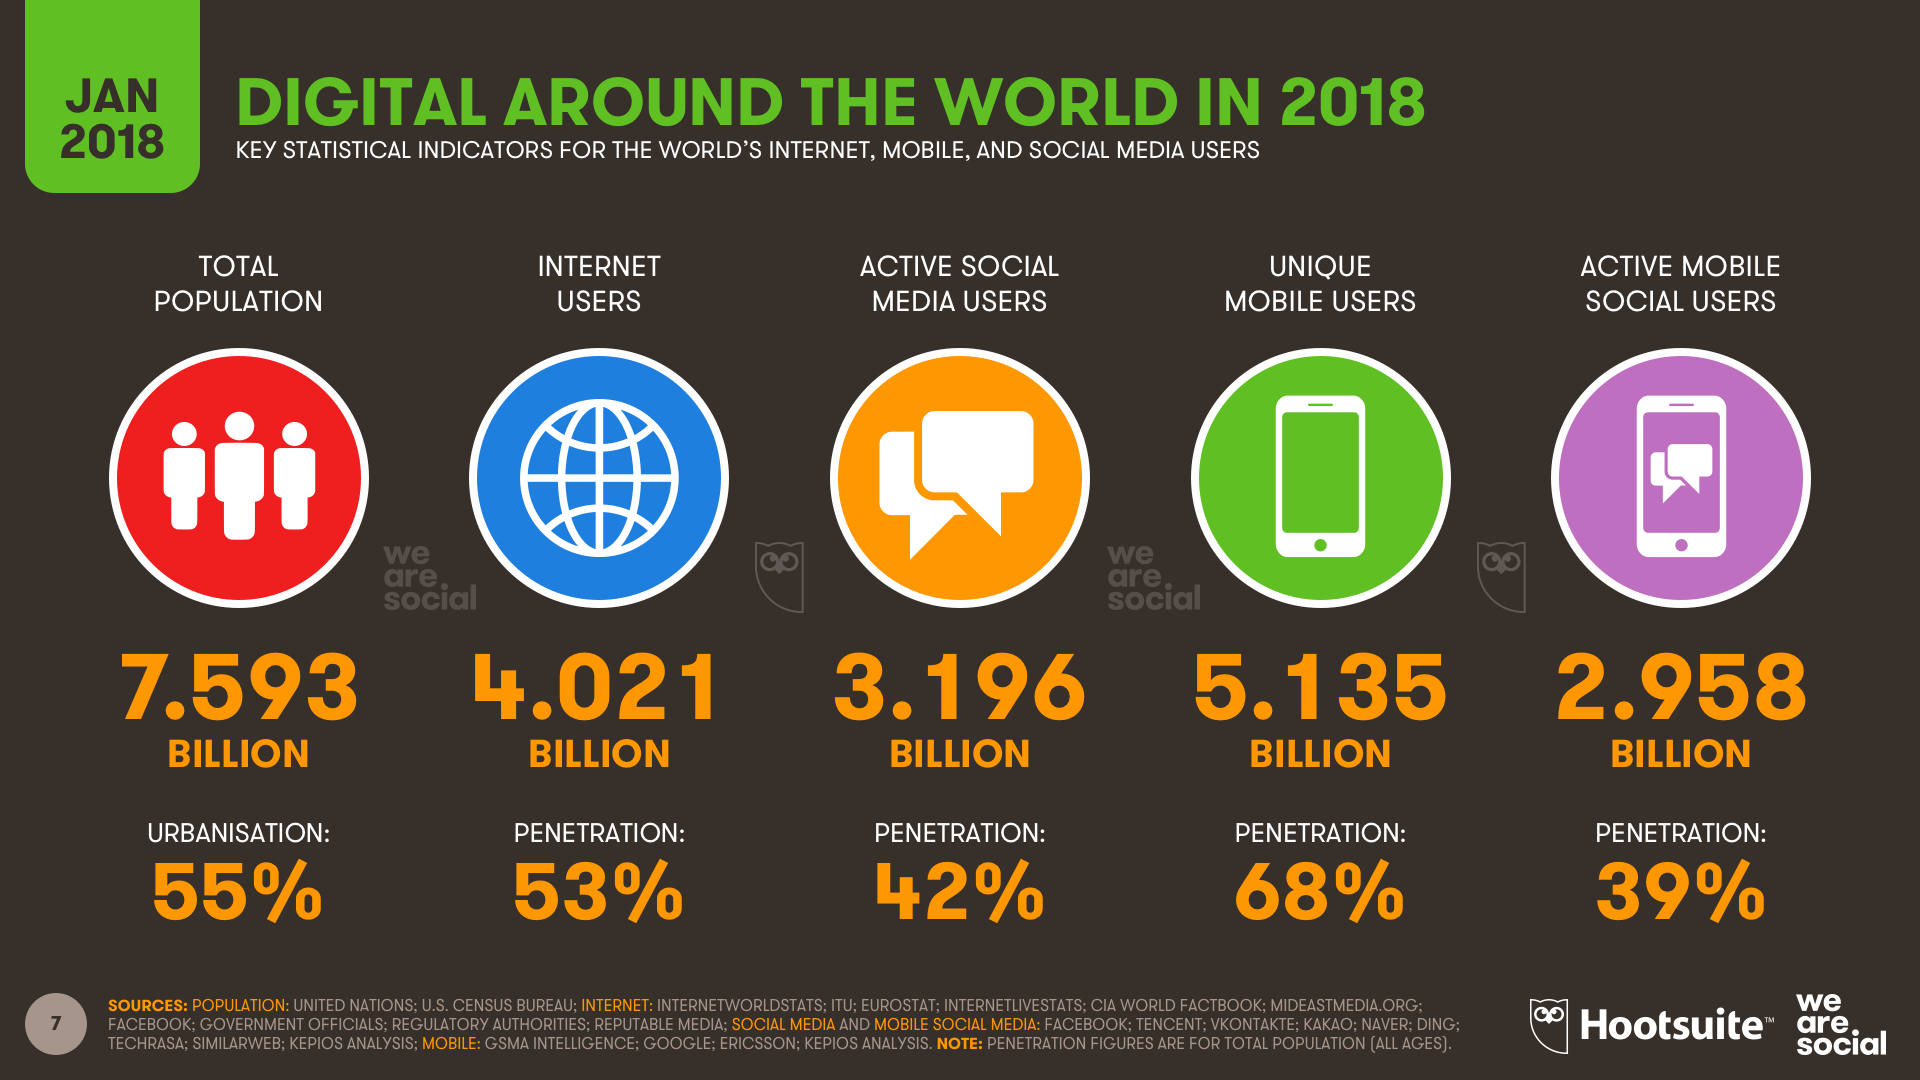 Digital world in 2018